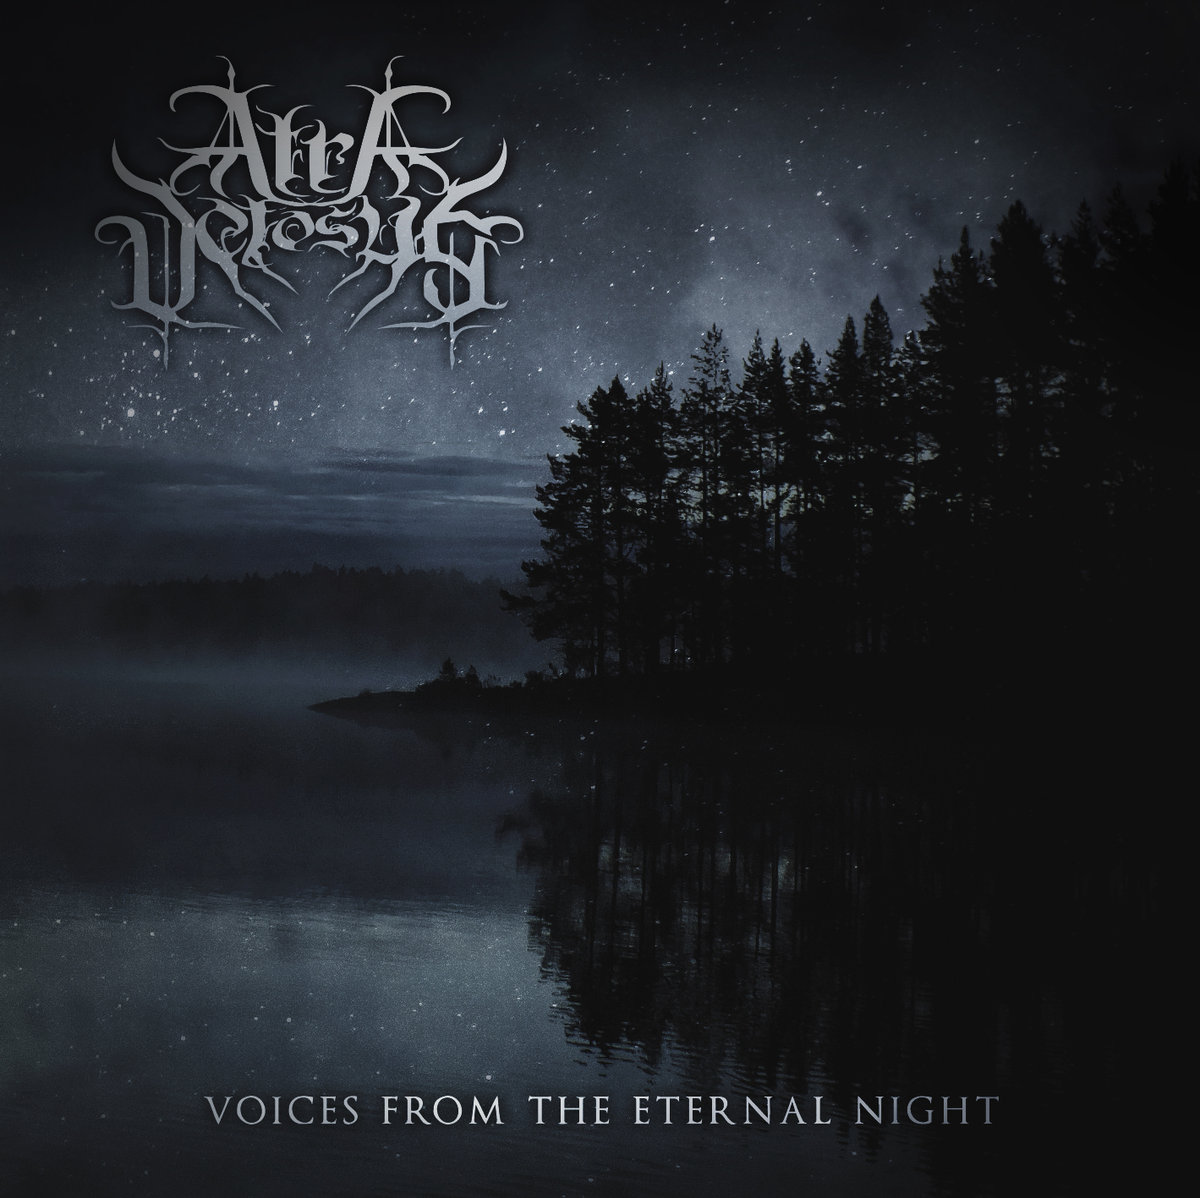 Atra Vetosus – Voices From The Eternal Night